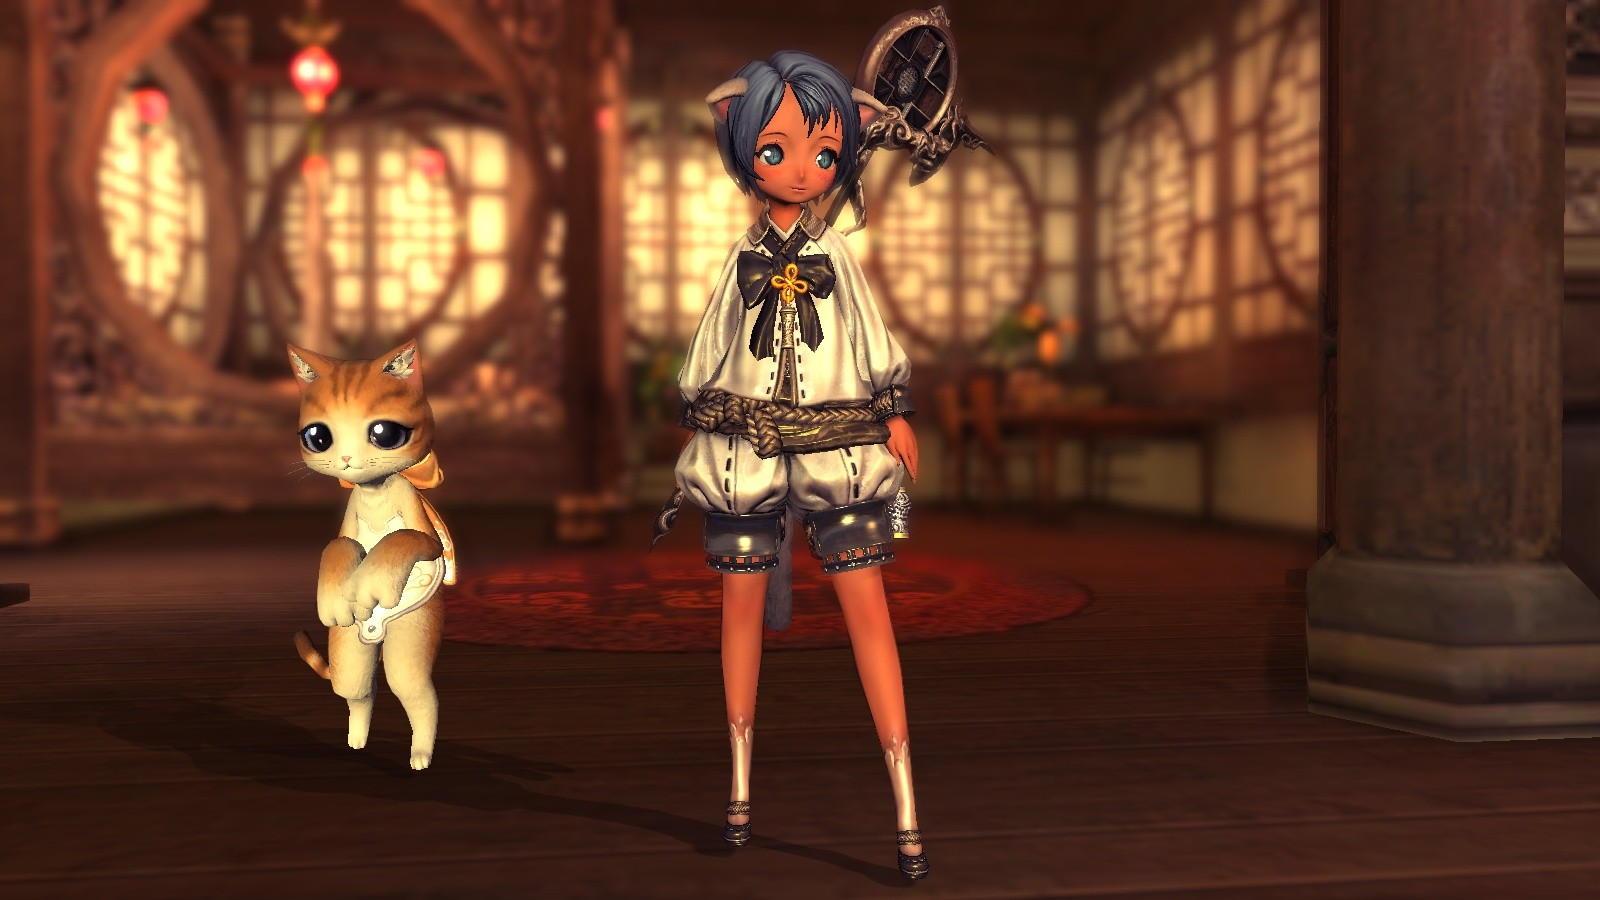 Blade & Soul - My Summoner and her heroic companion, lol.